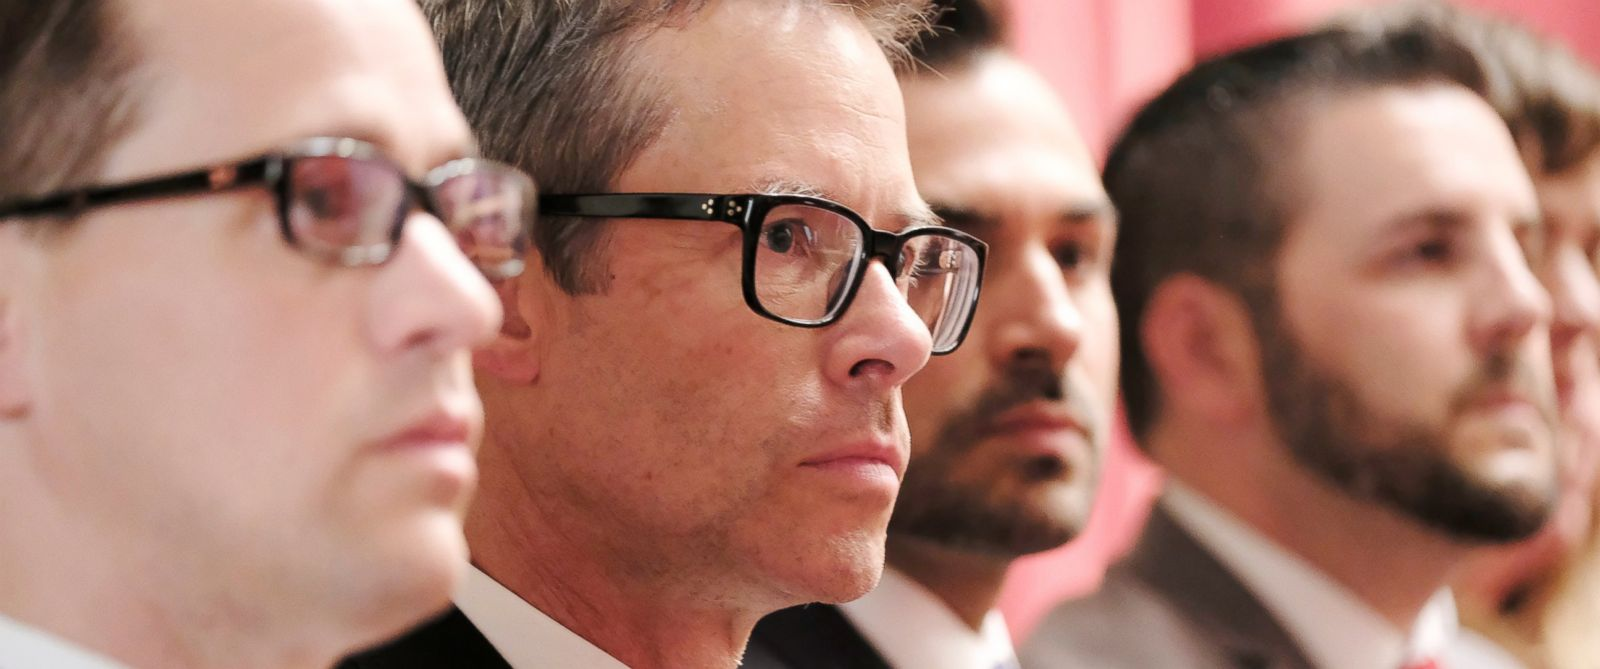 """PHOTO: ABCs mini-series """"When We Rise"""" chronicles the real-life struggles of LGBT men and women who helped pioneer one of the last legs of the U.S. Civil Rights movement. Pictured is actor Guy Pearce (center) who portrays Cleve Jones."""